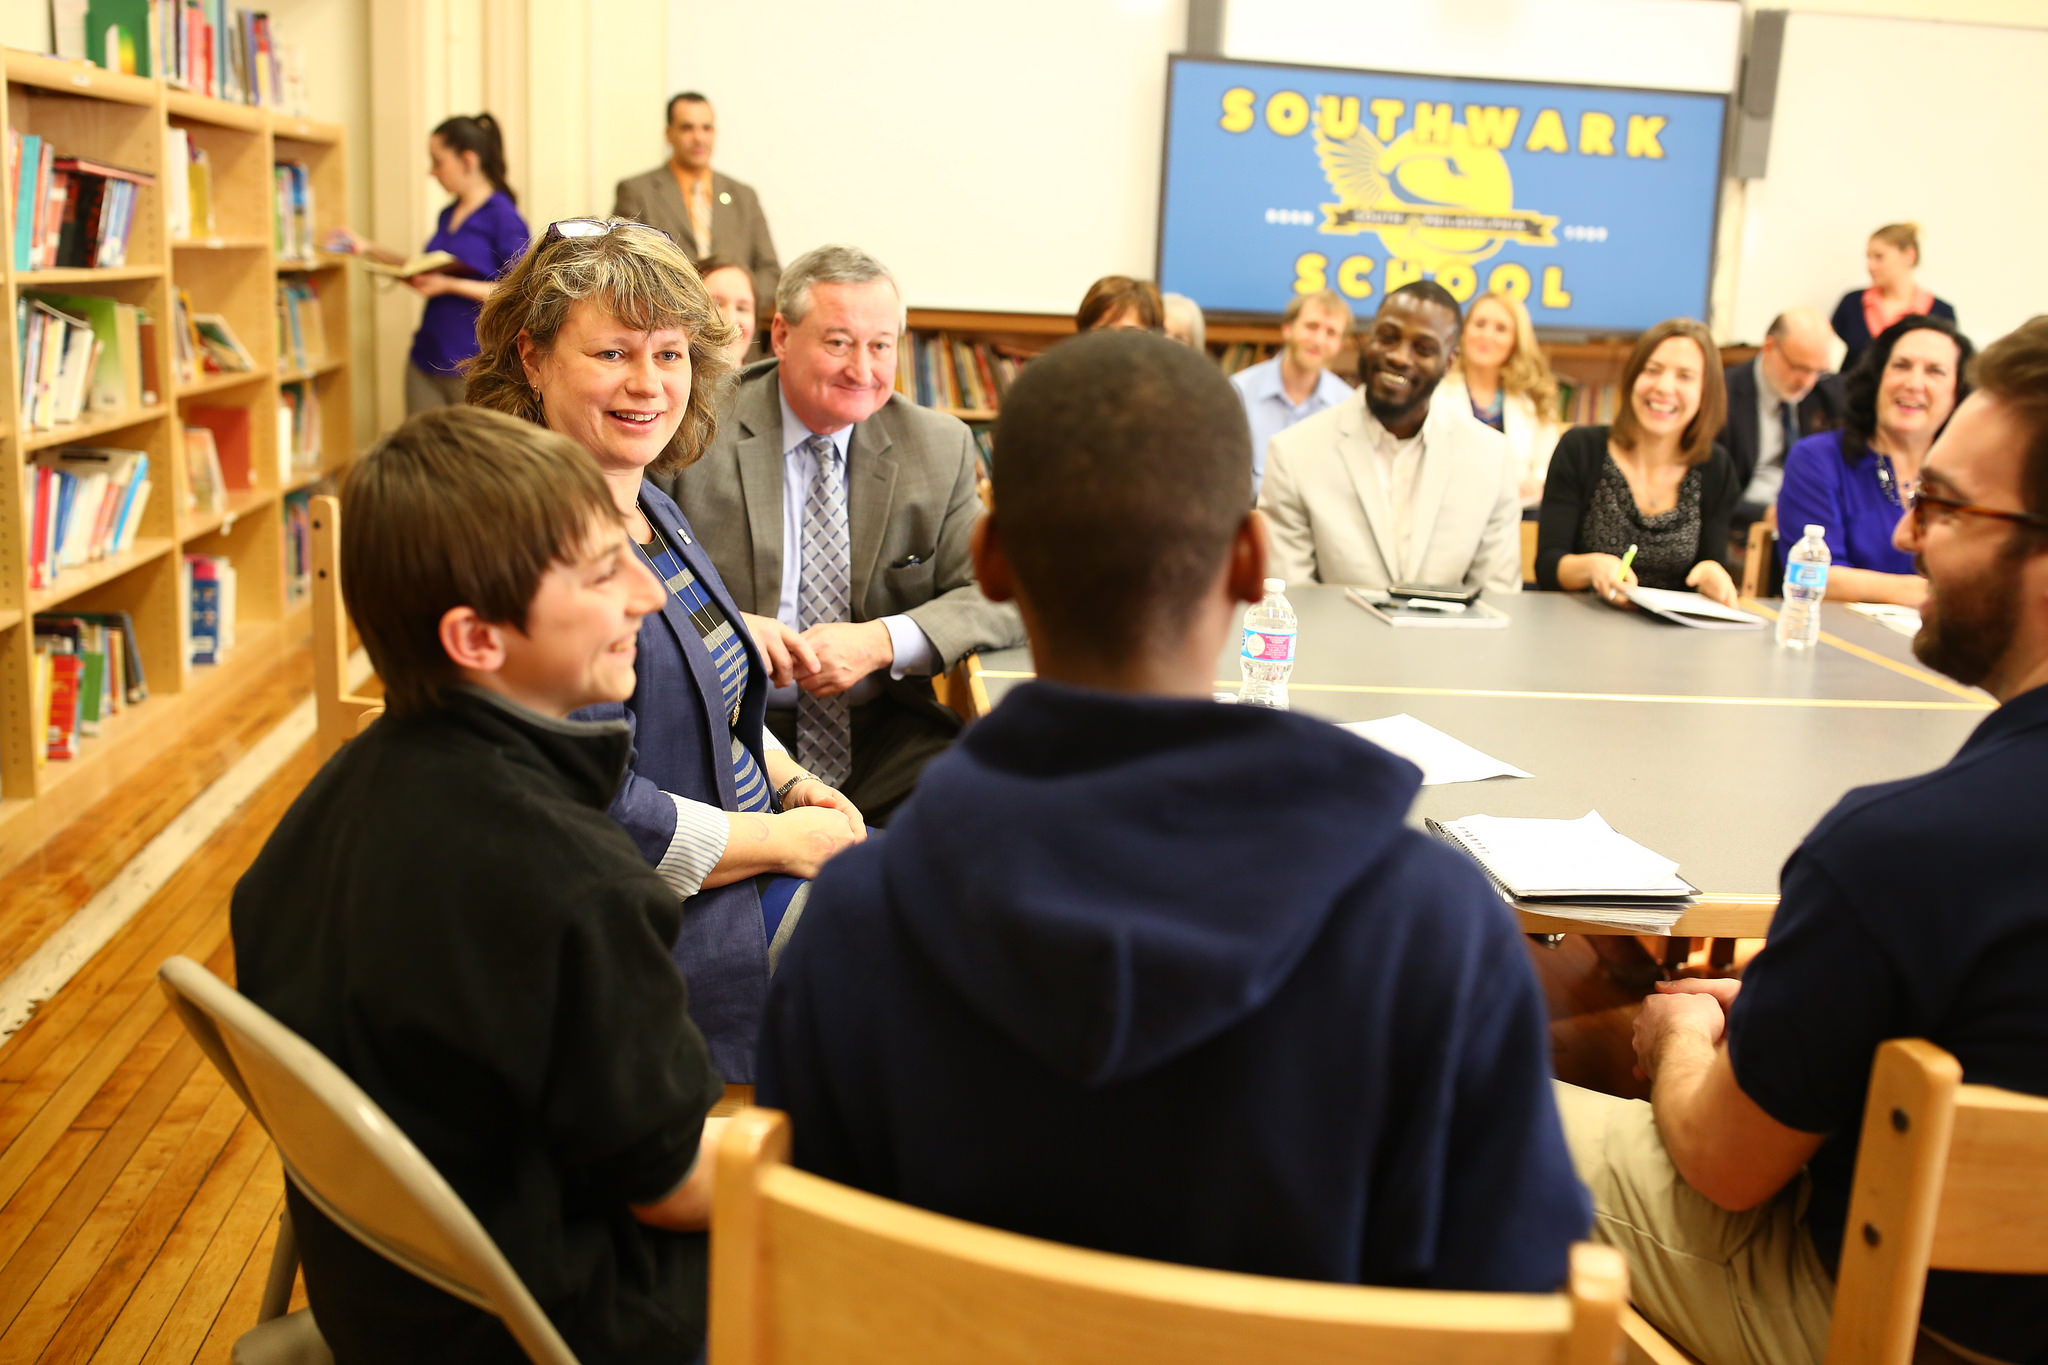 Mayor Kenney meets with parents, students, school staff and service providers at Southwark Elementary School in South Philadelphia to discuss how community schools help students succeed.